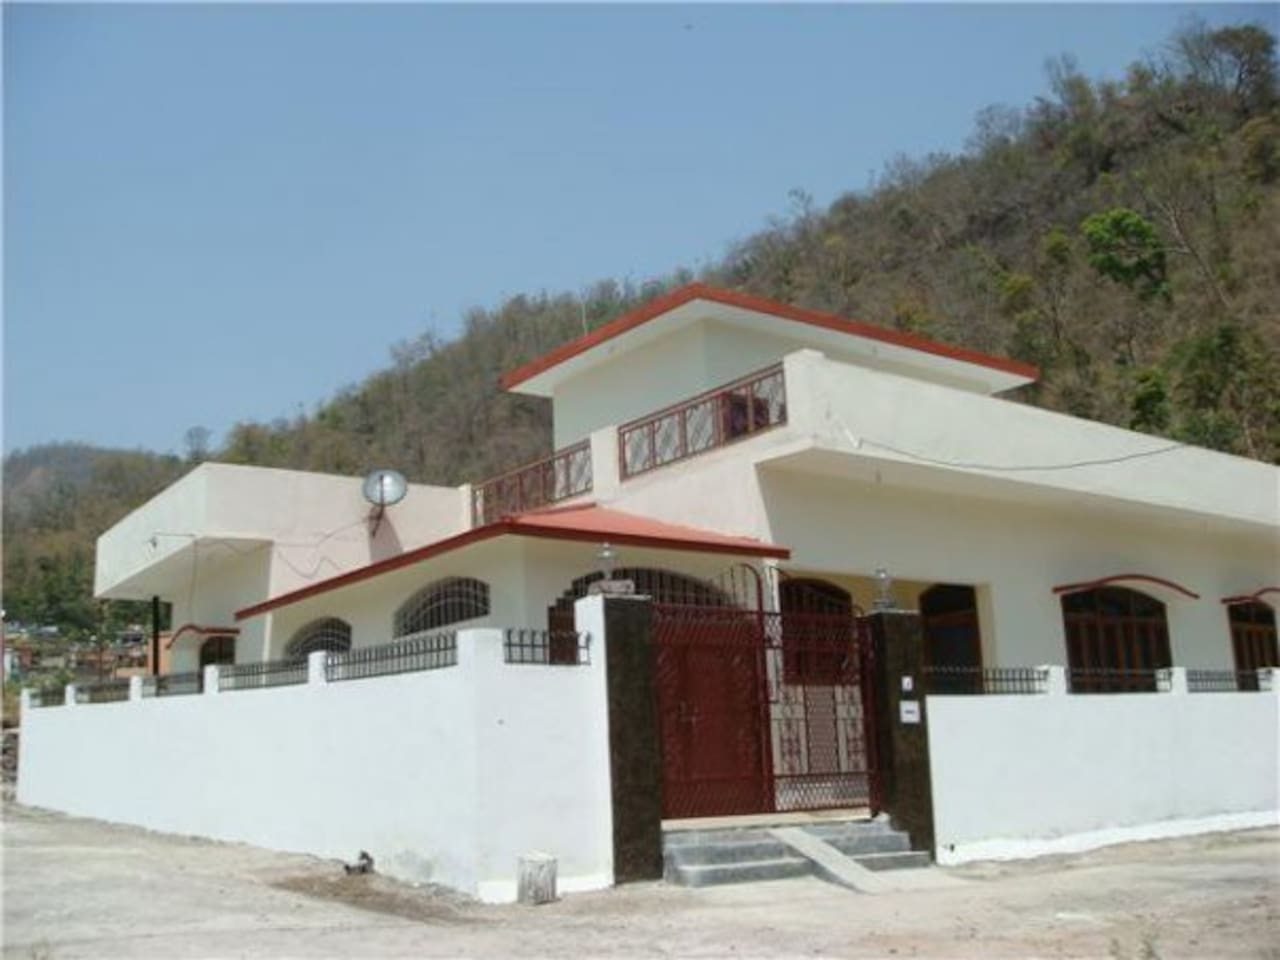 VACATION HOUSE IN RISHIKESH, INDIA